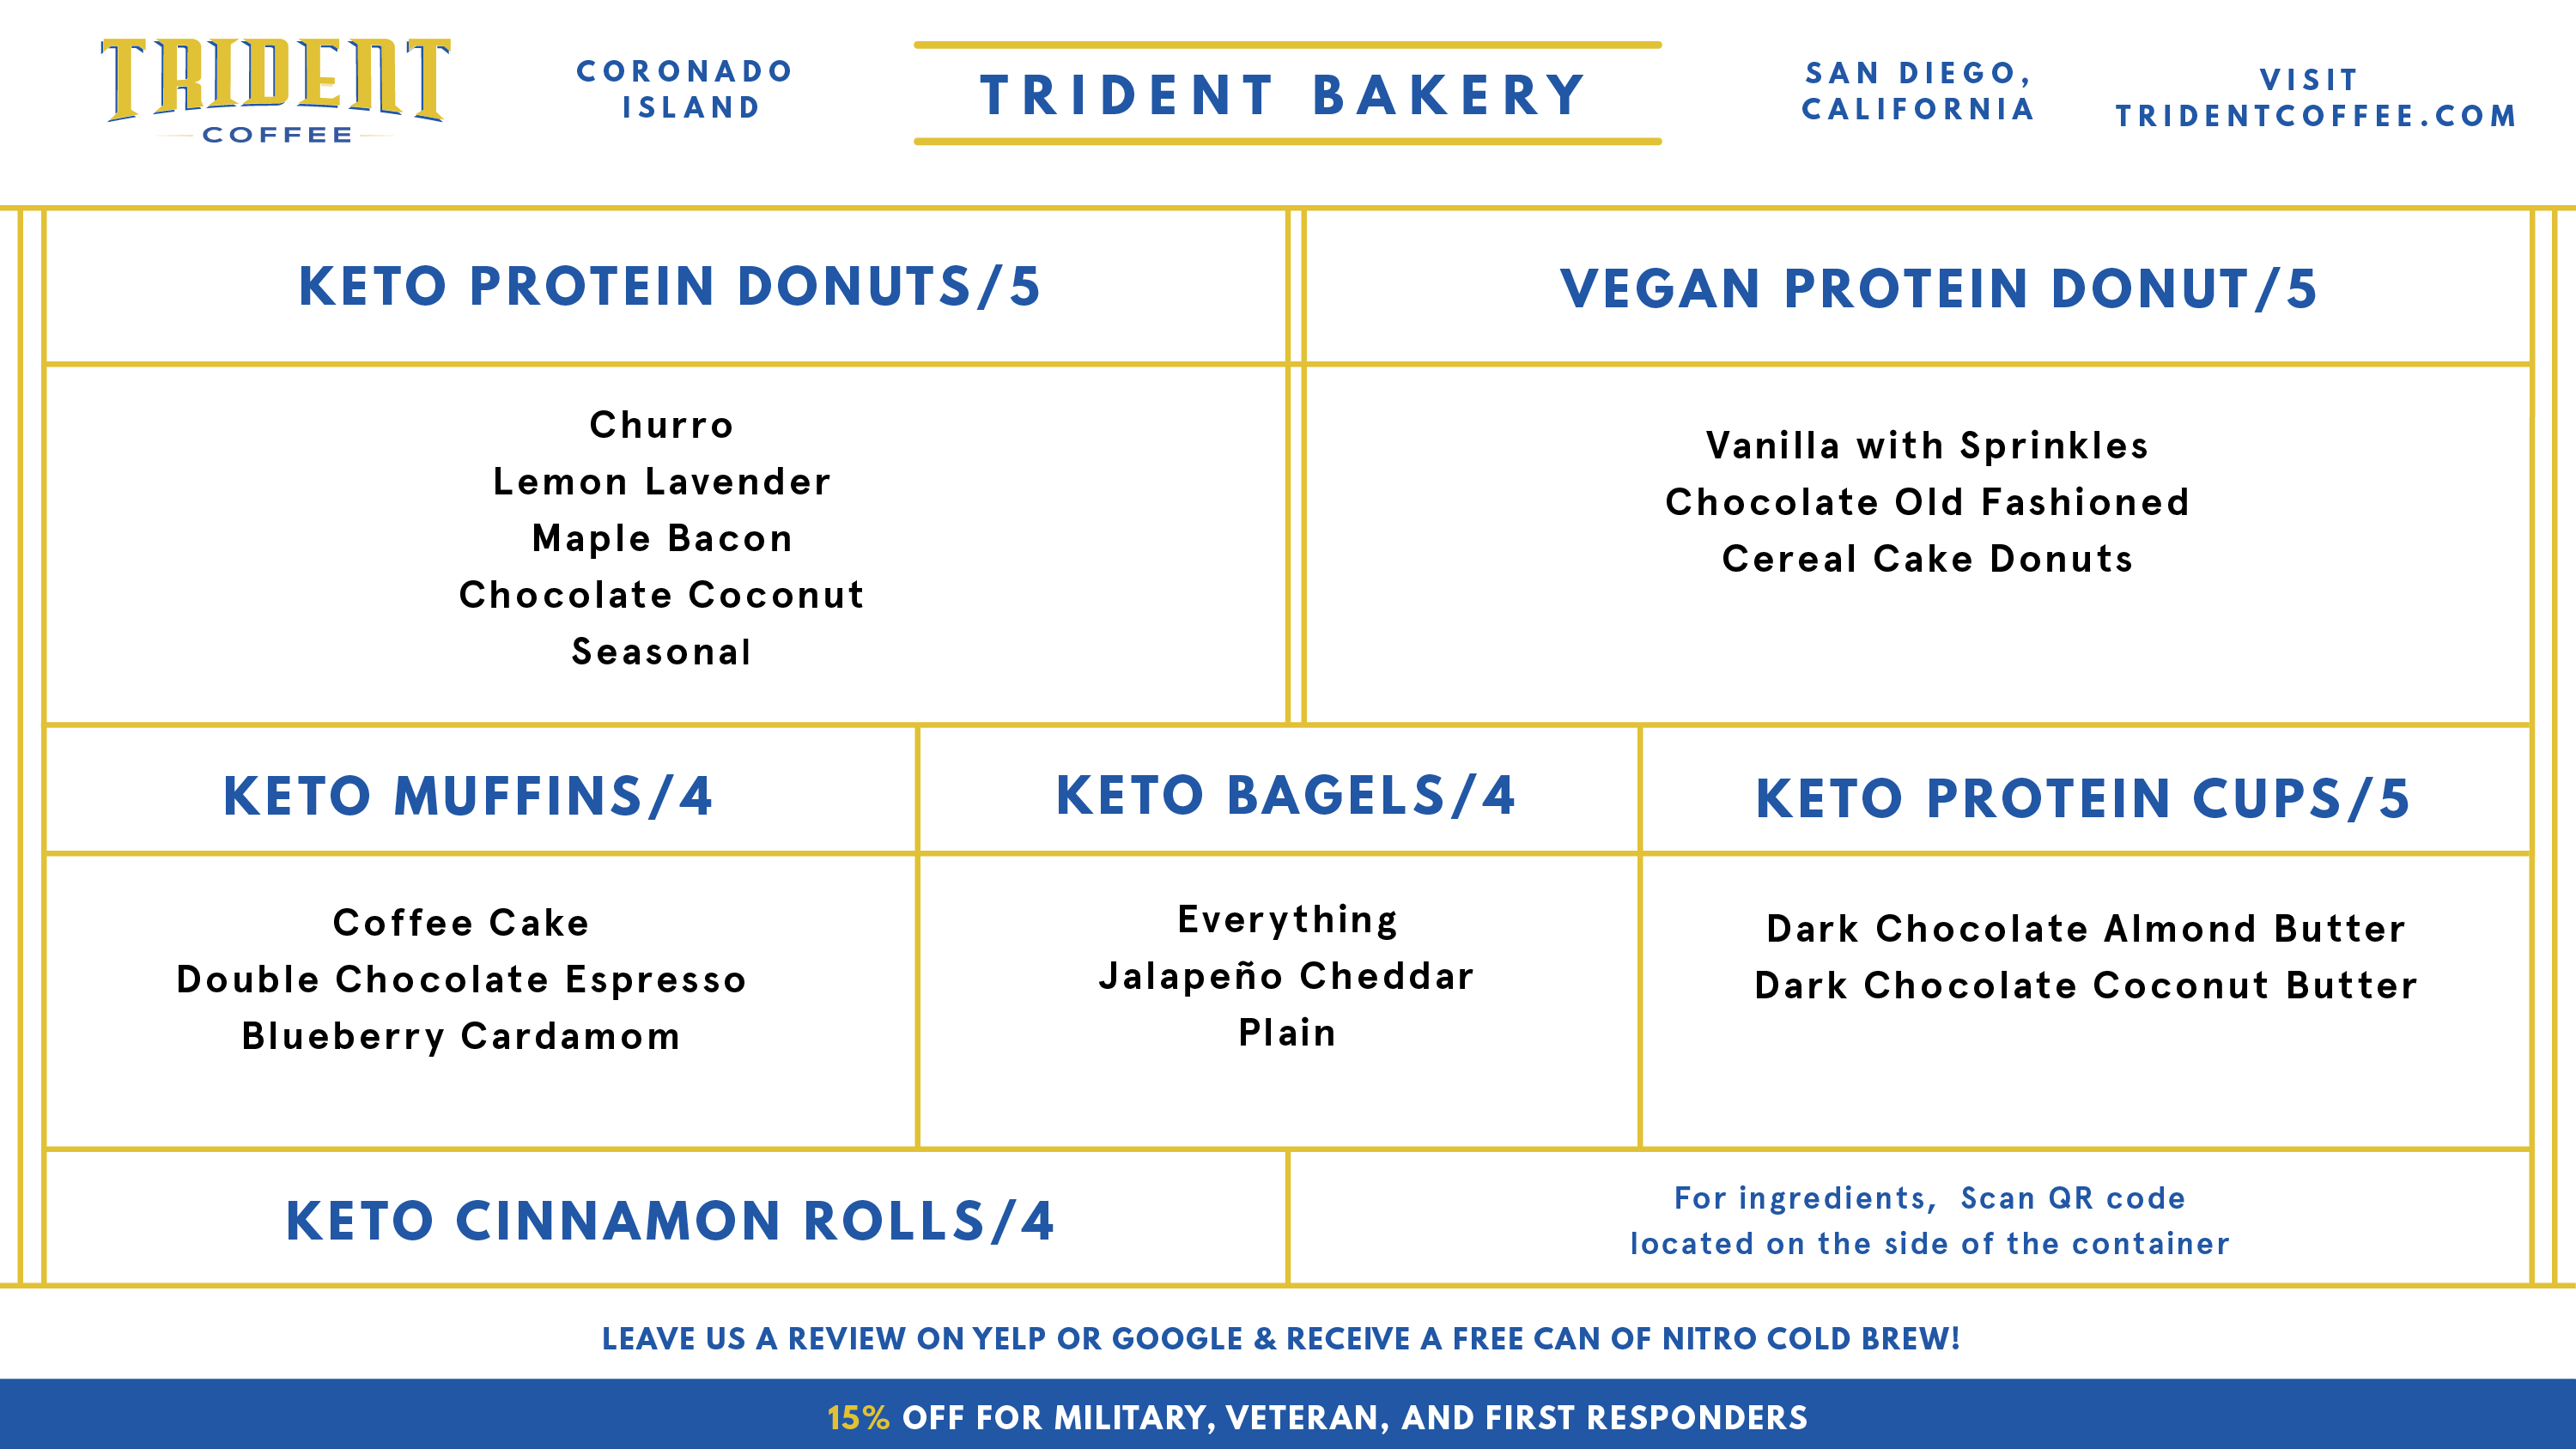 Coronado TapRoom and Keto Bakery Menu - Trident Coffee Bakery